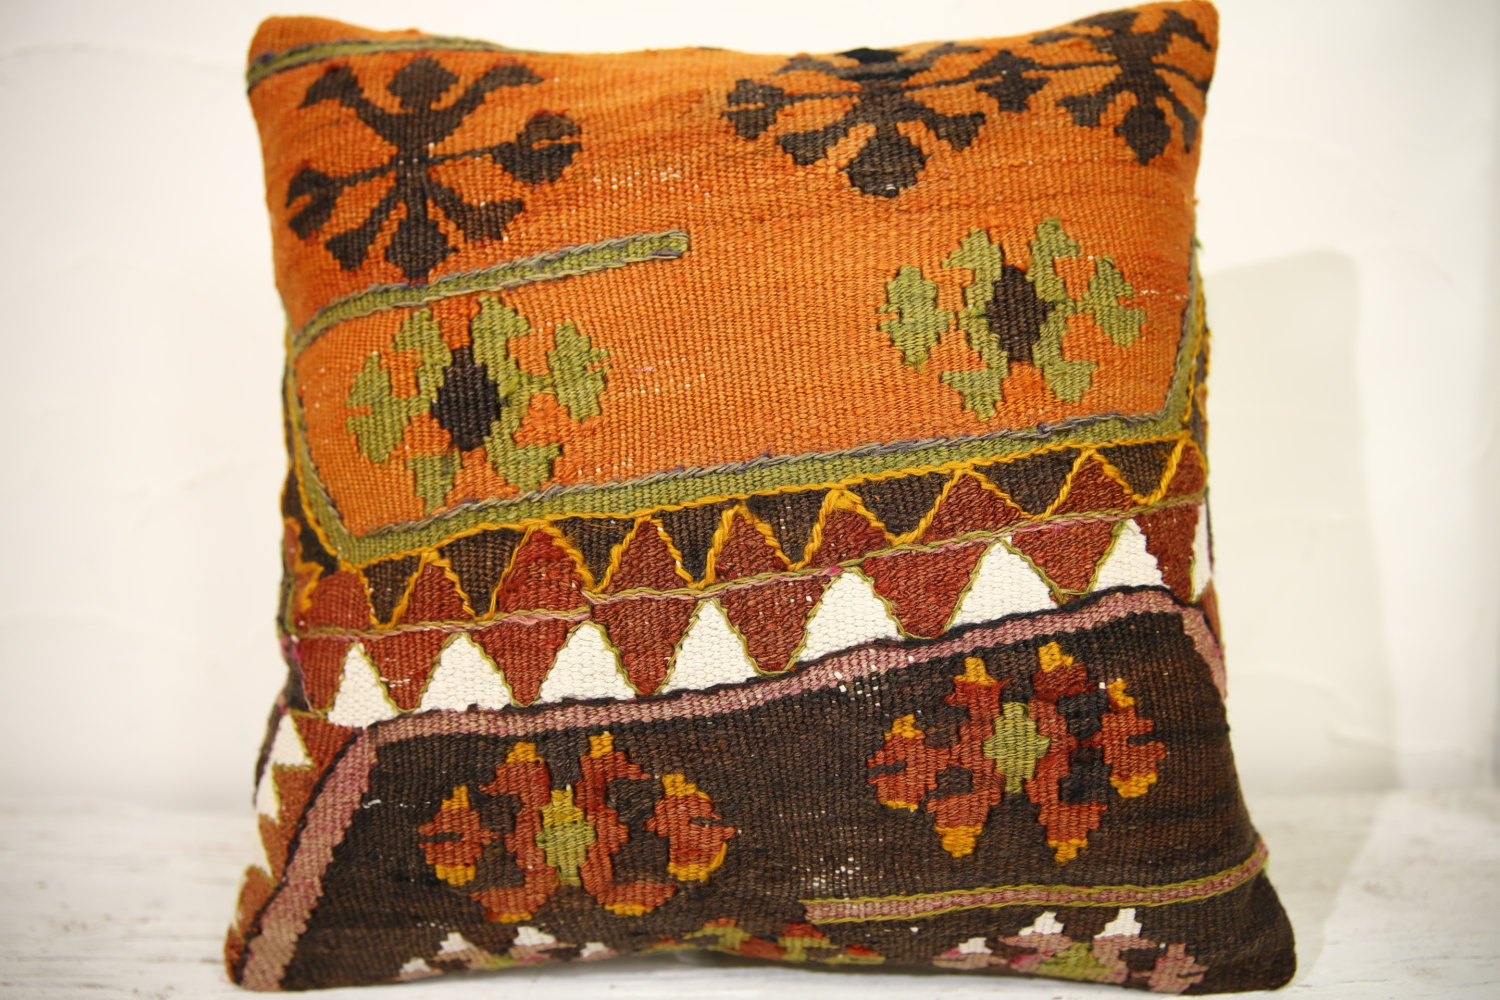 Kilim Pillows | 16x16 | Decorative Pillows | 910 | Accent Pillowsturkish pillow